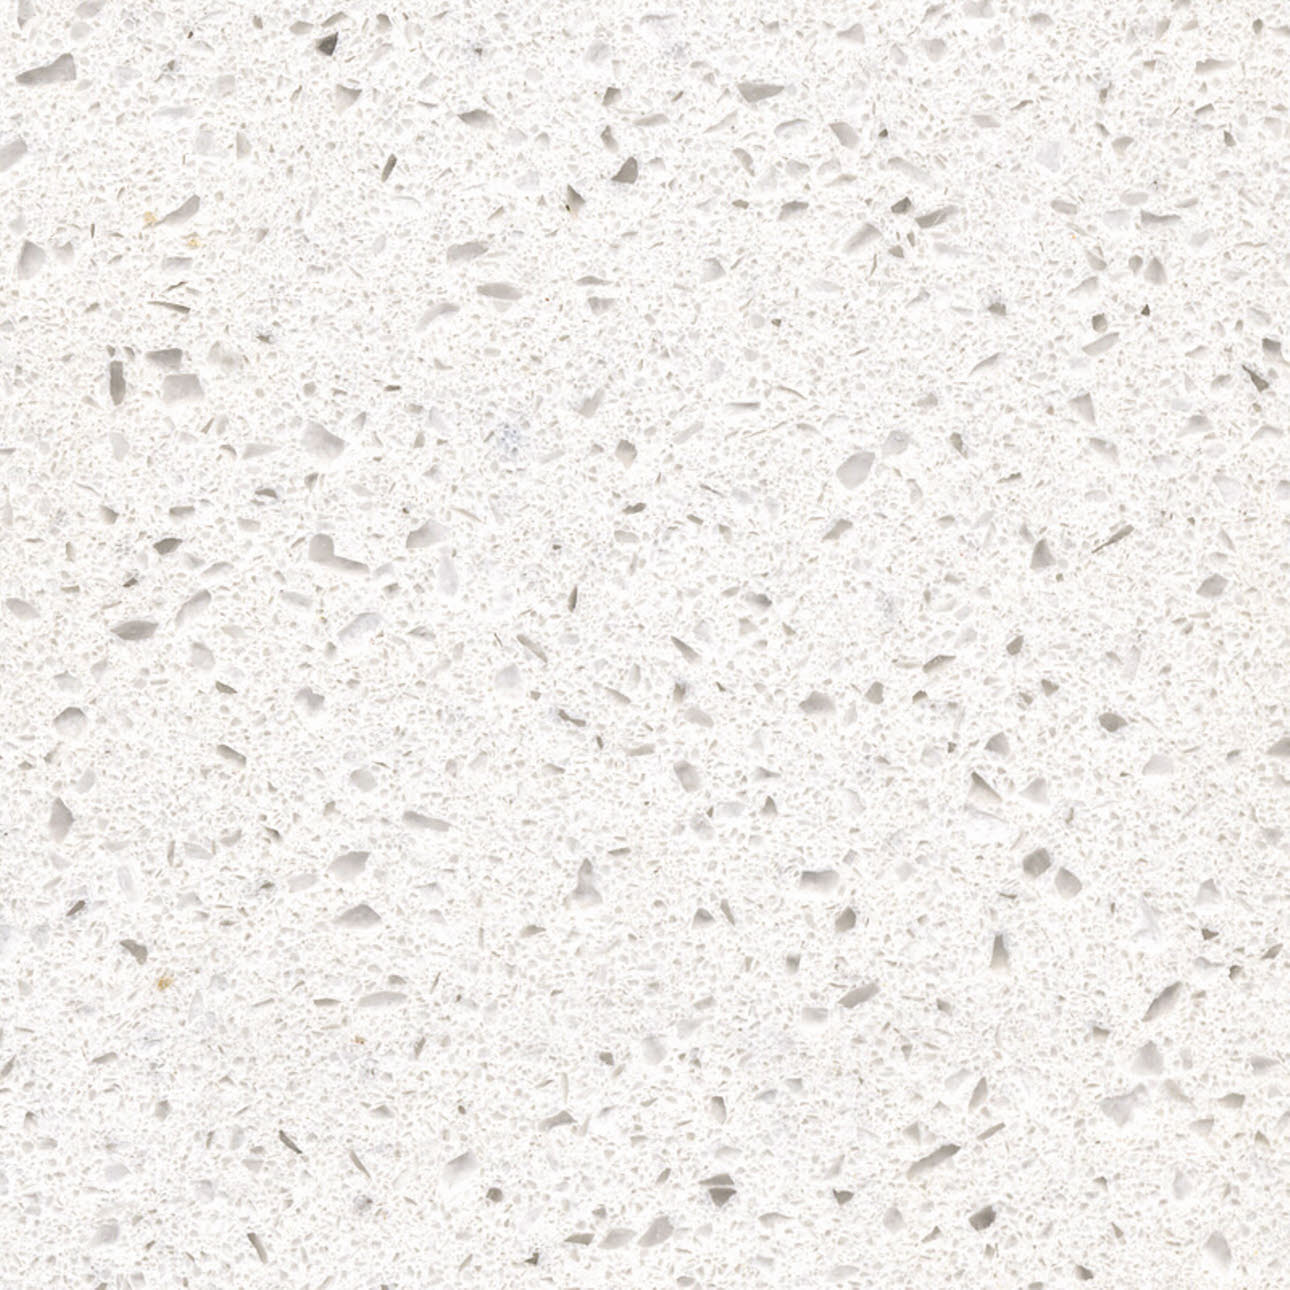 Nieve white granite kitchen worktop, close up